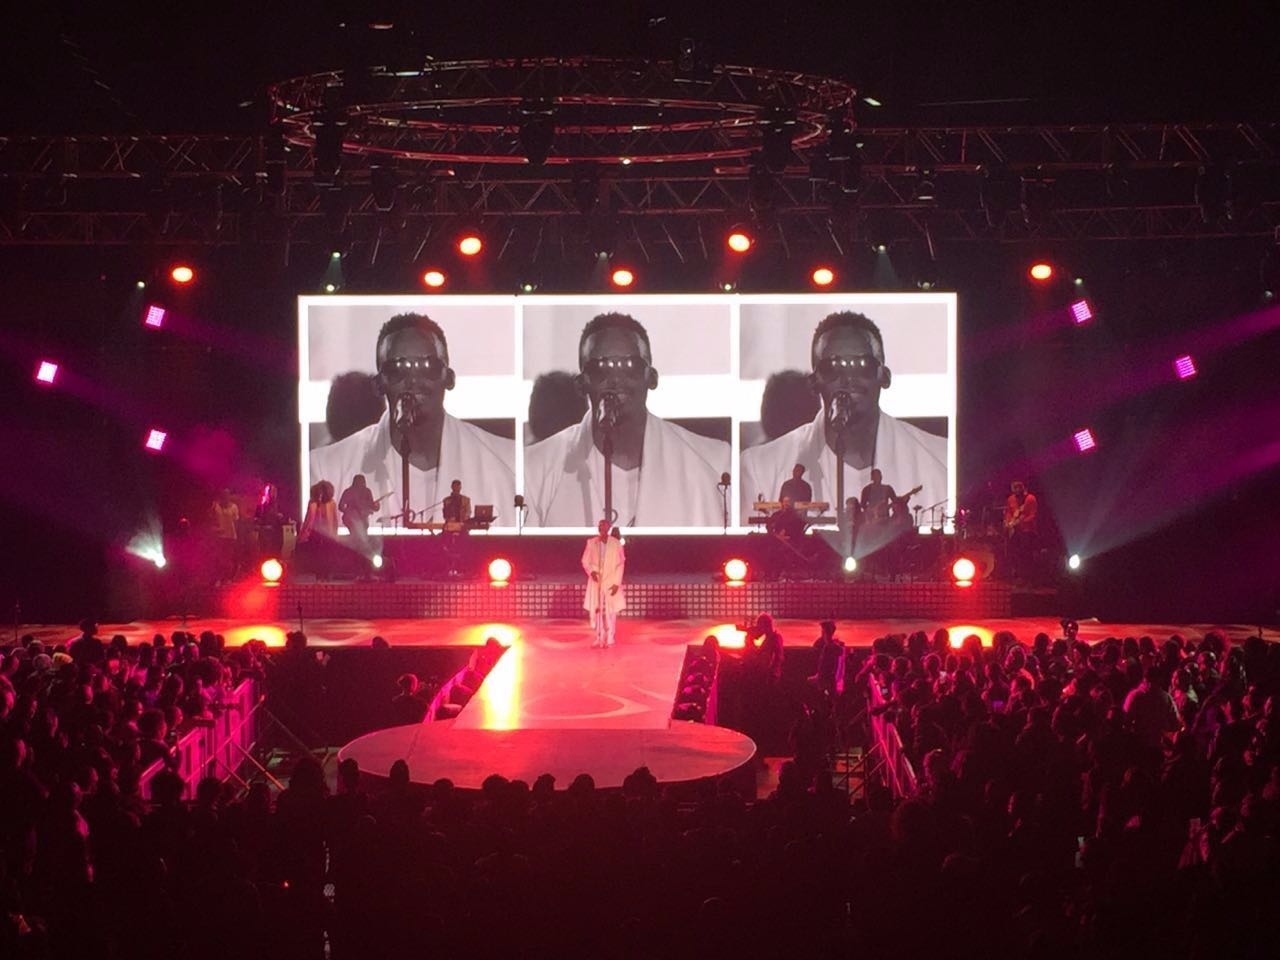 UpadIII6 44sqm South Africa live concert,Johannesburg, South Africa,2016